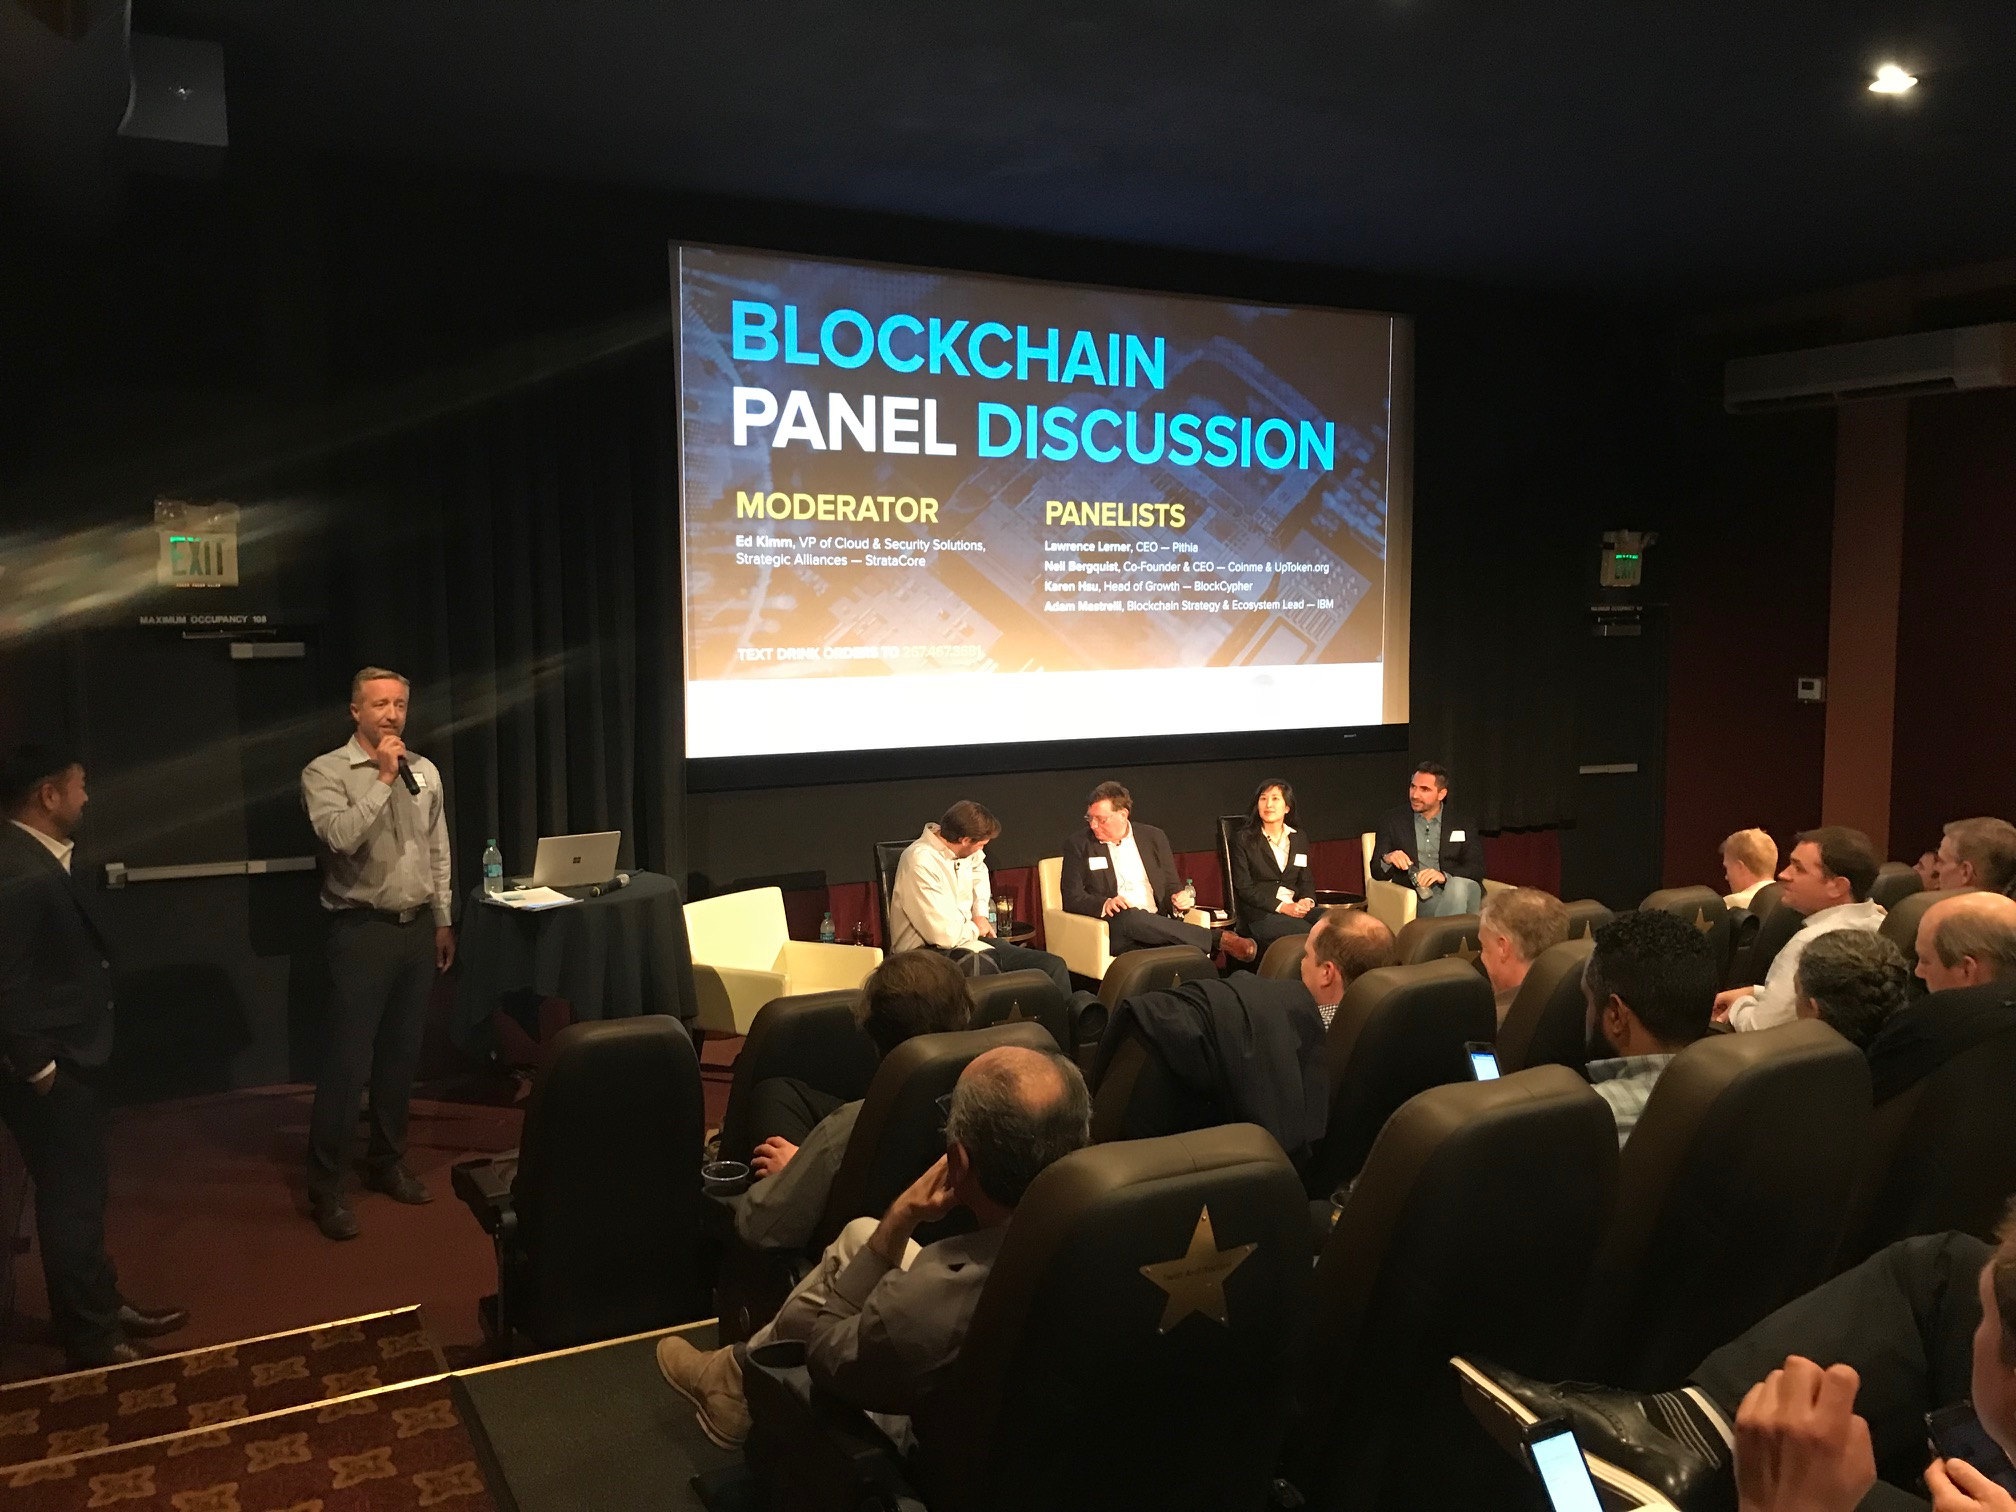 Blockchain Panel Discussion - Video - Featured Image